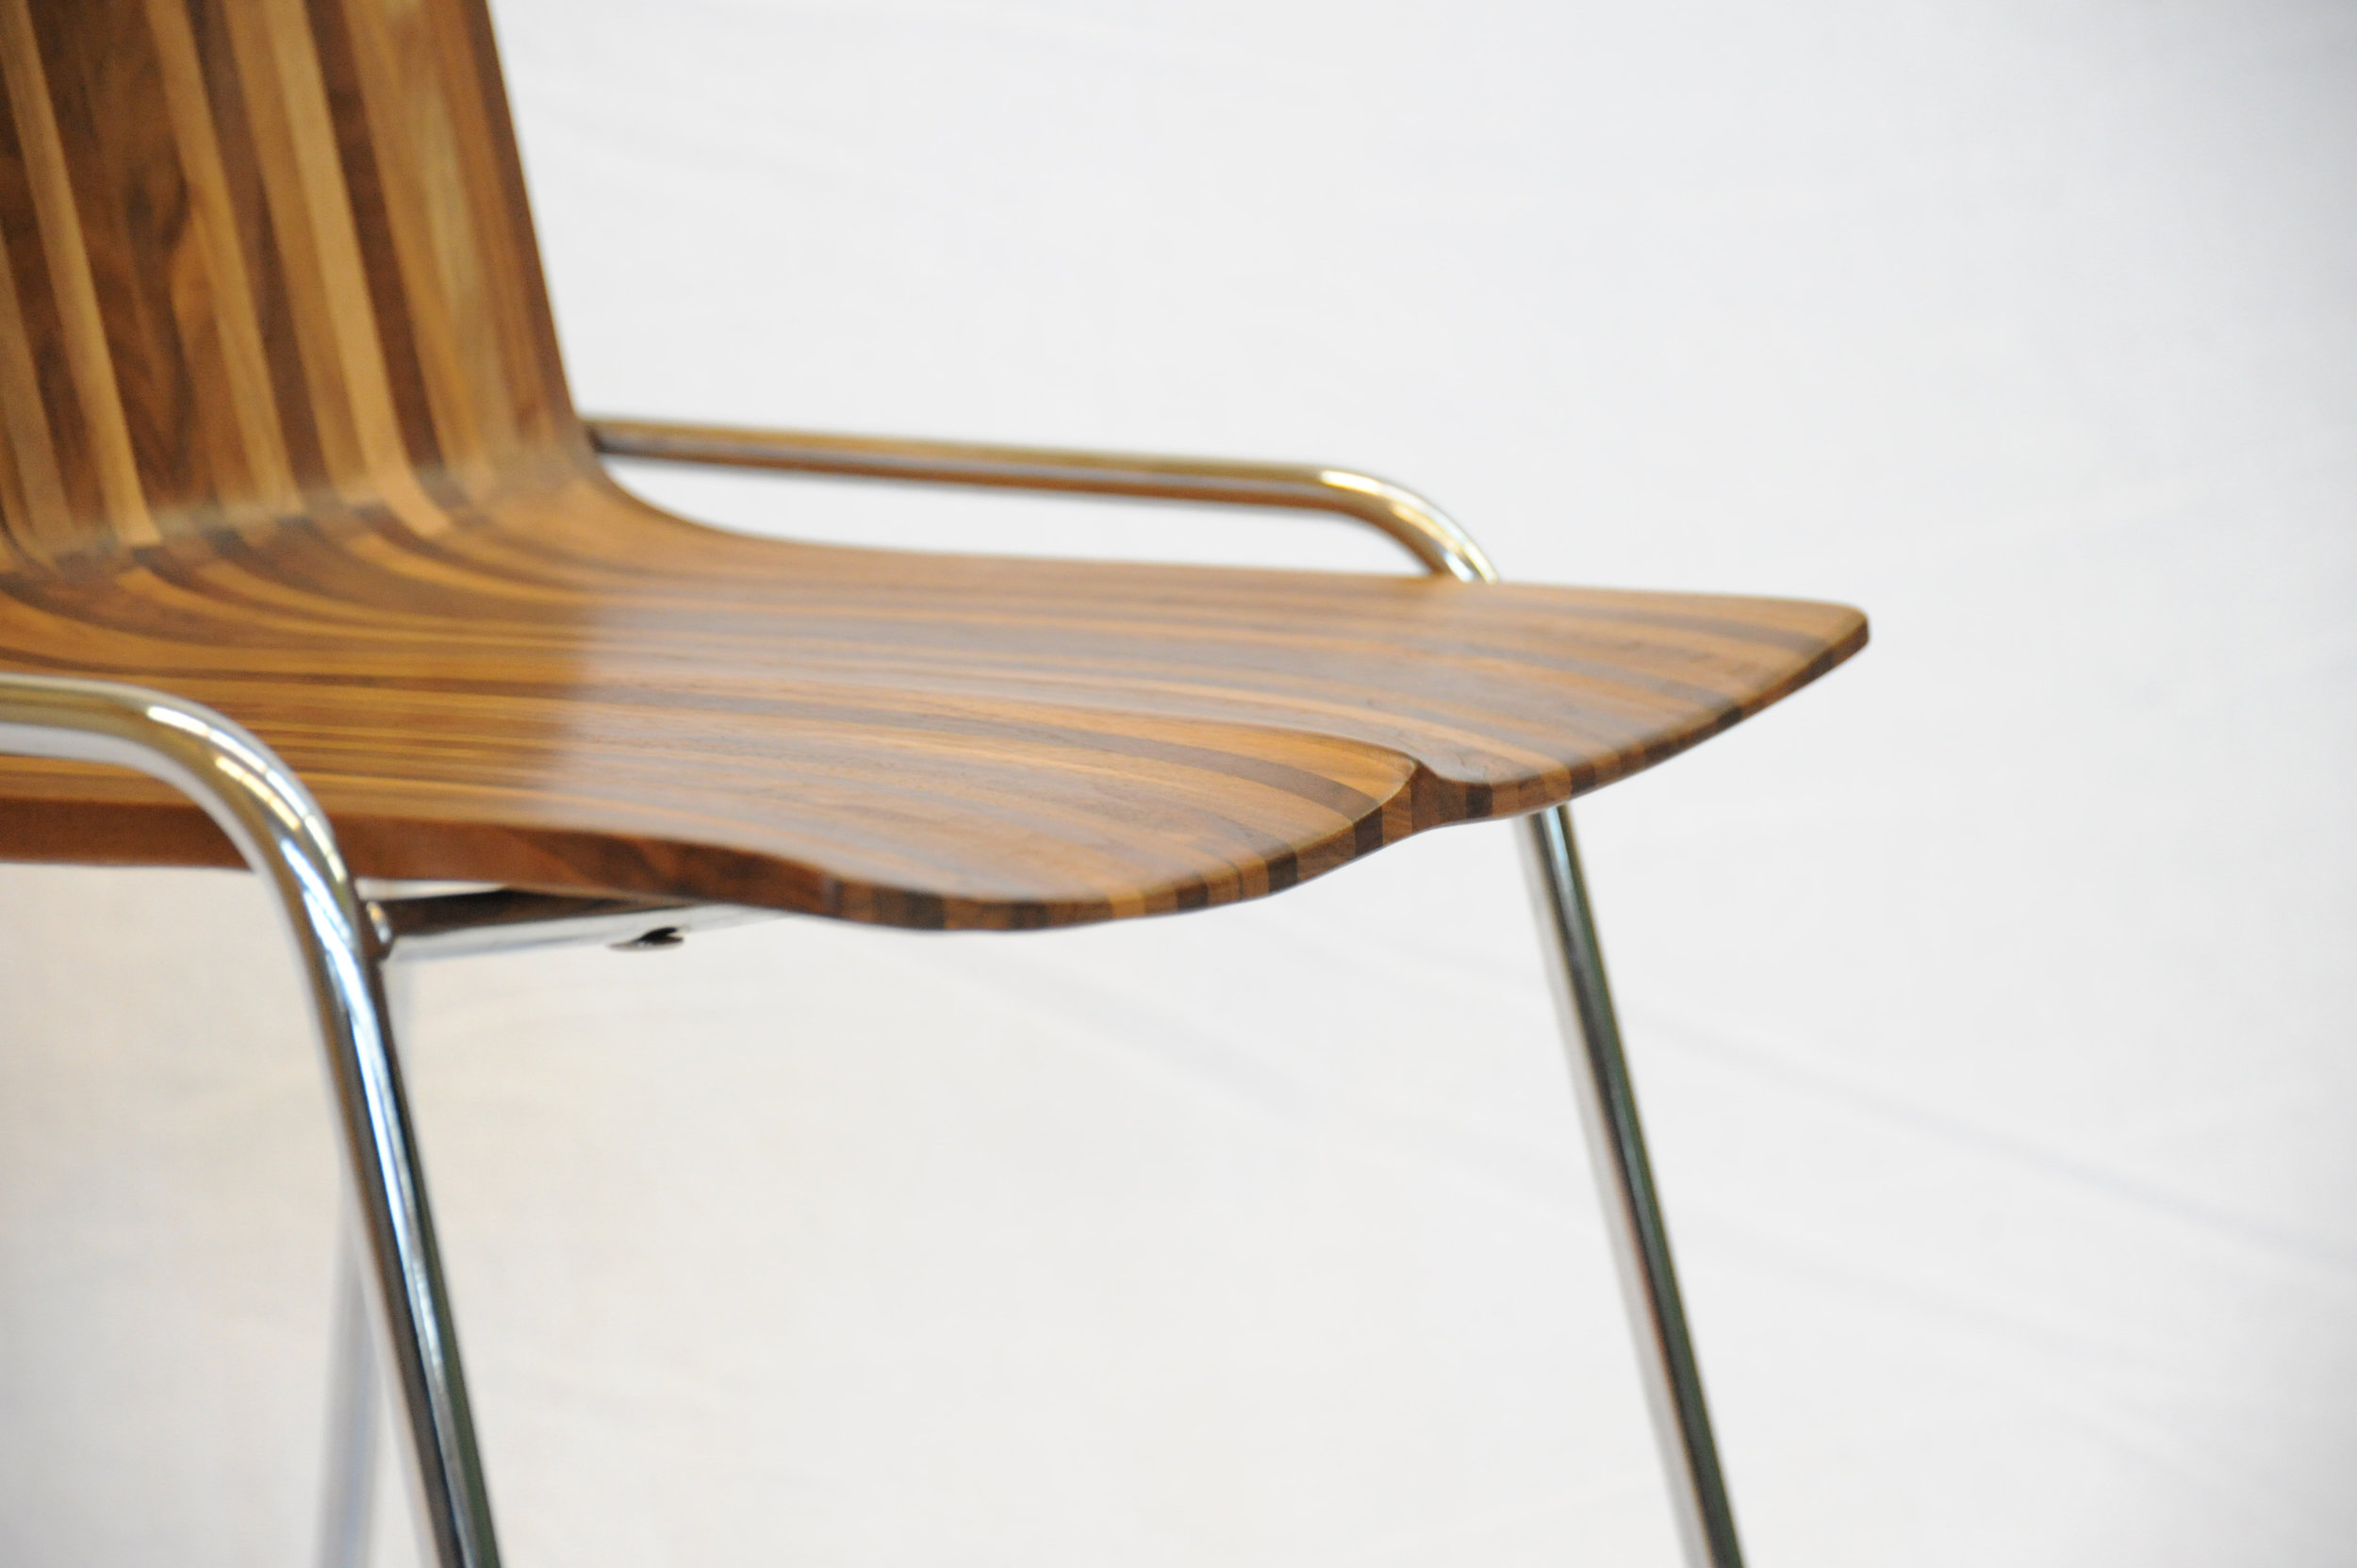 Carf Chair by Nicolas Meyer / Nico Spacecraft